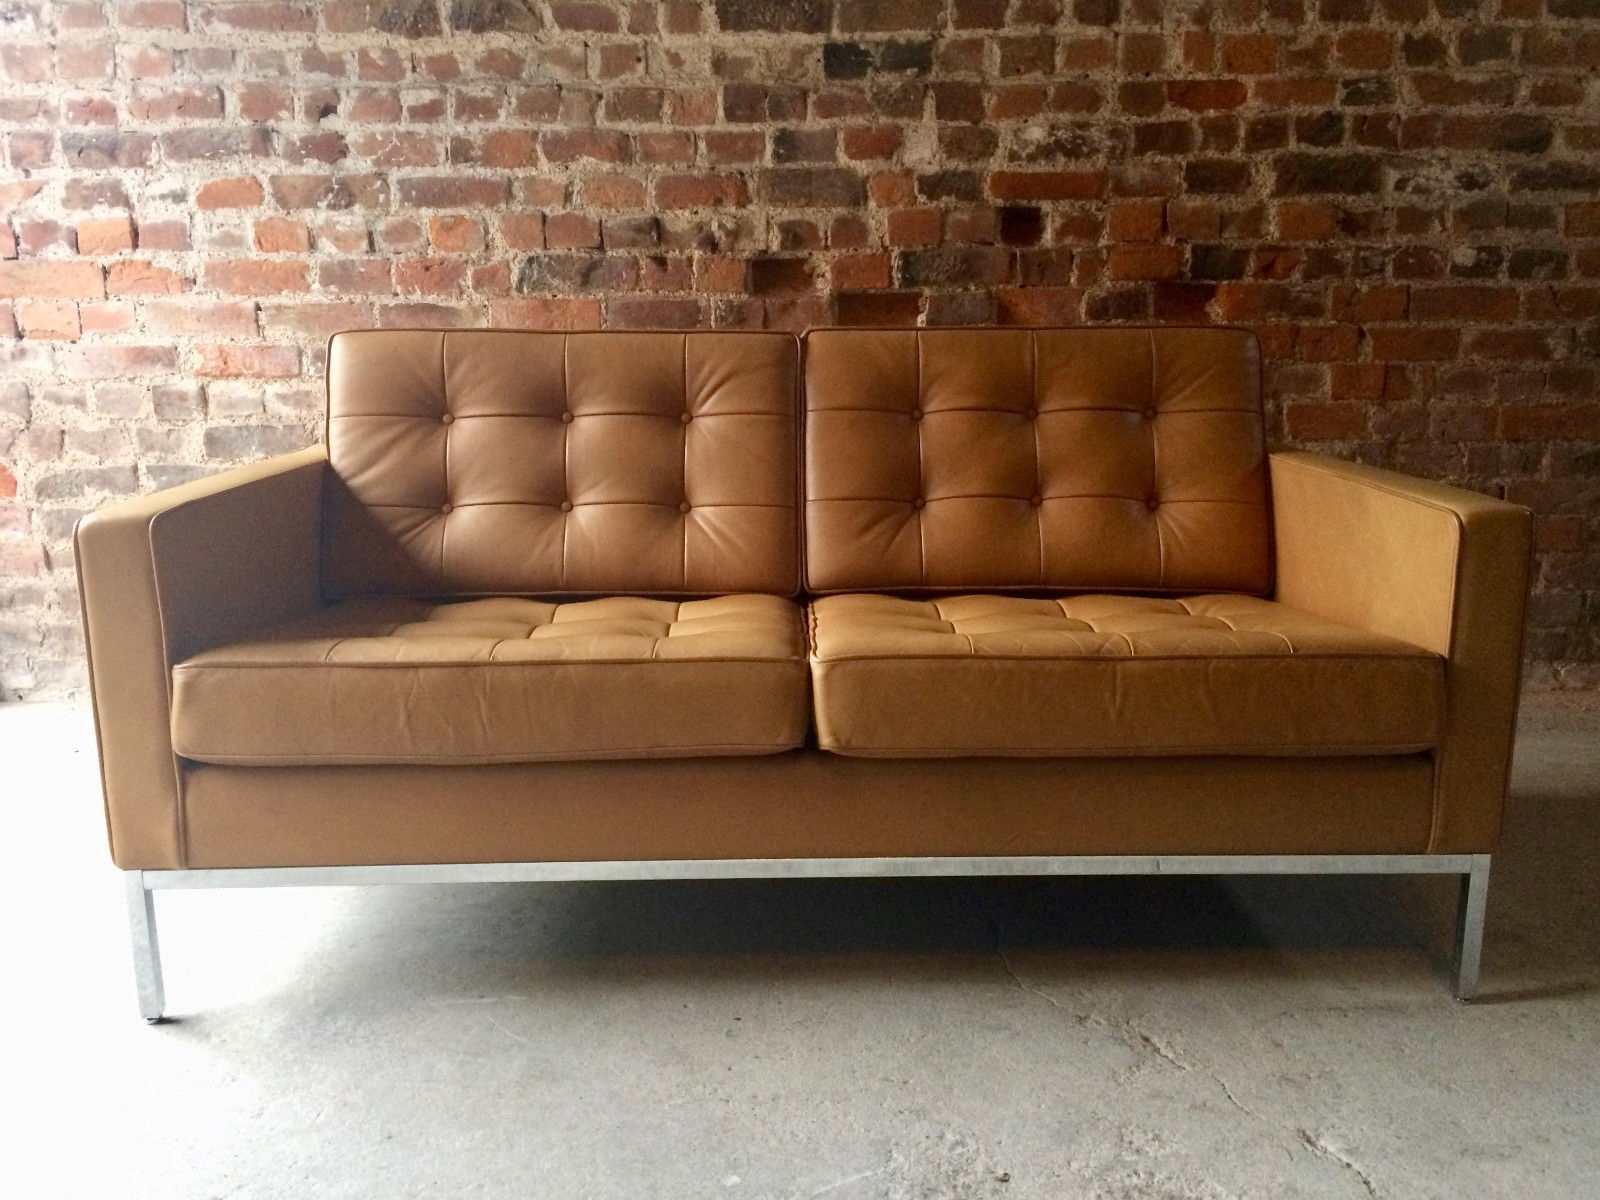 Preferred Vintage 2 Seater Leather Sofaflorence Knoll For Knoll For Sale Intended For Florence Leather Sofas (View 3 of 20)